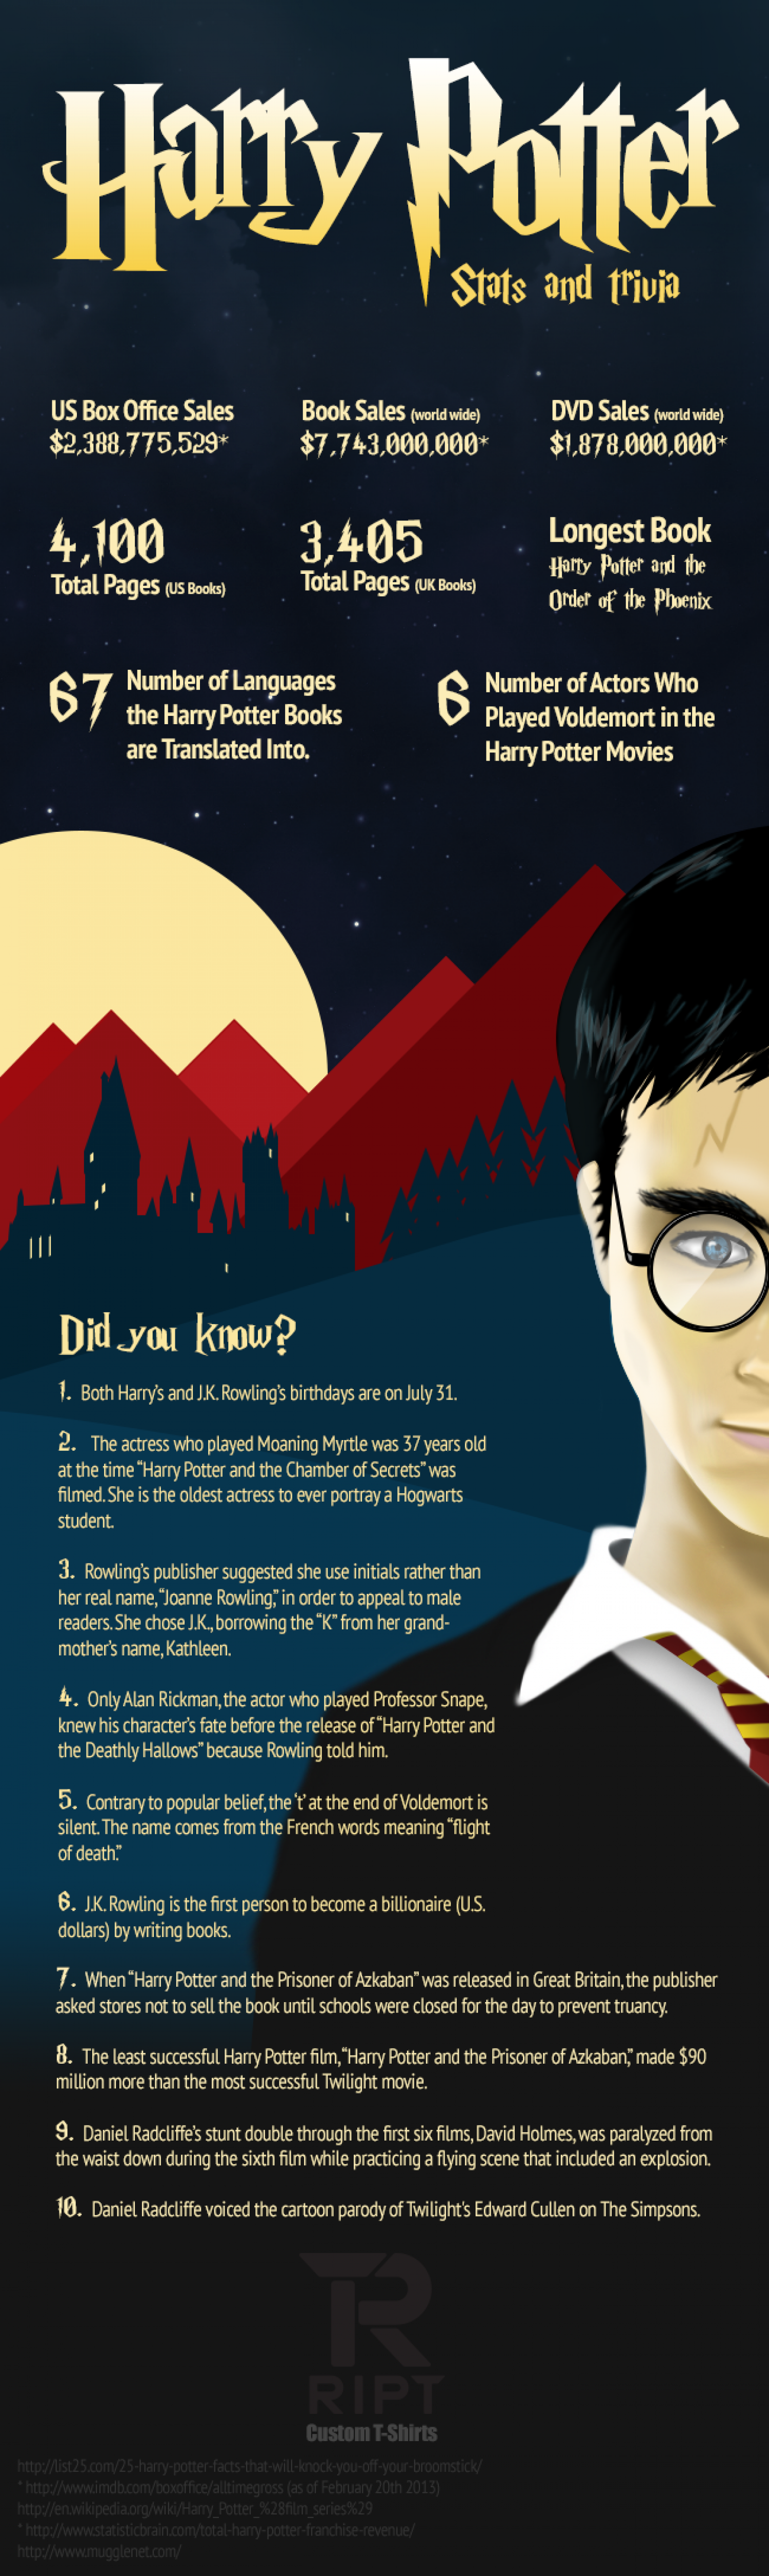 Harry Potter Book Movie : Harry potter fanfiction facts visual ly